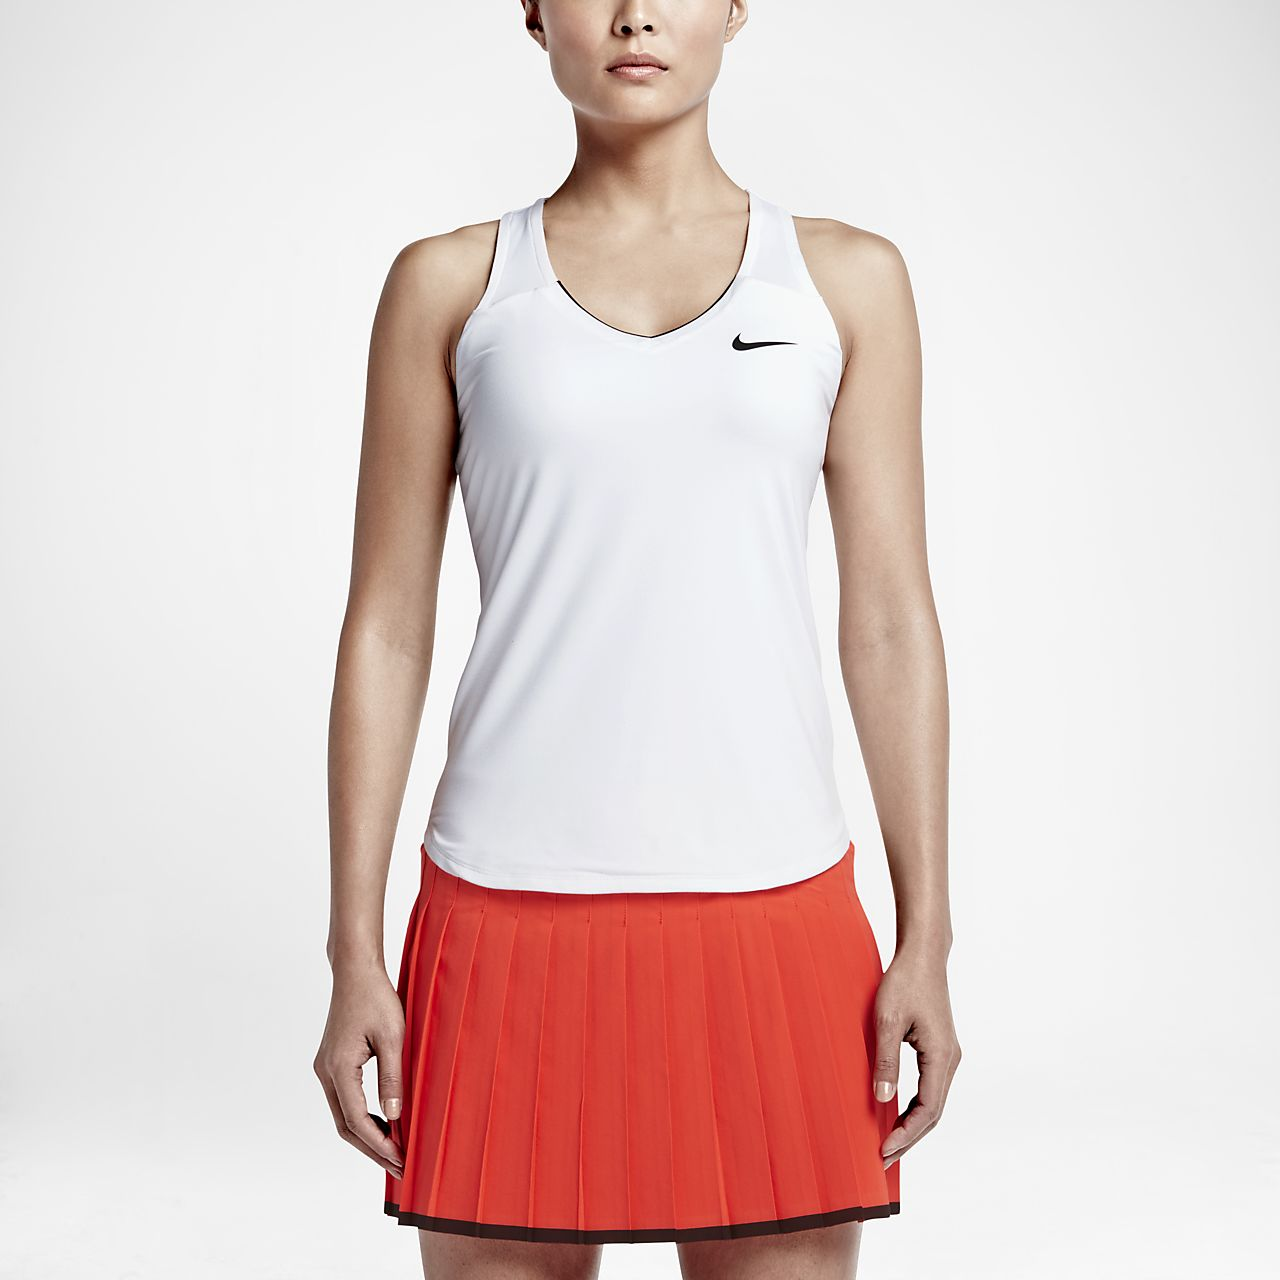 NikeCourt Team Pure Women's Tennis Tank Top